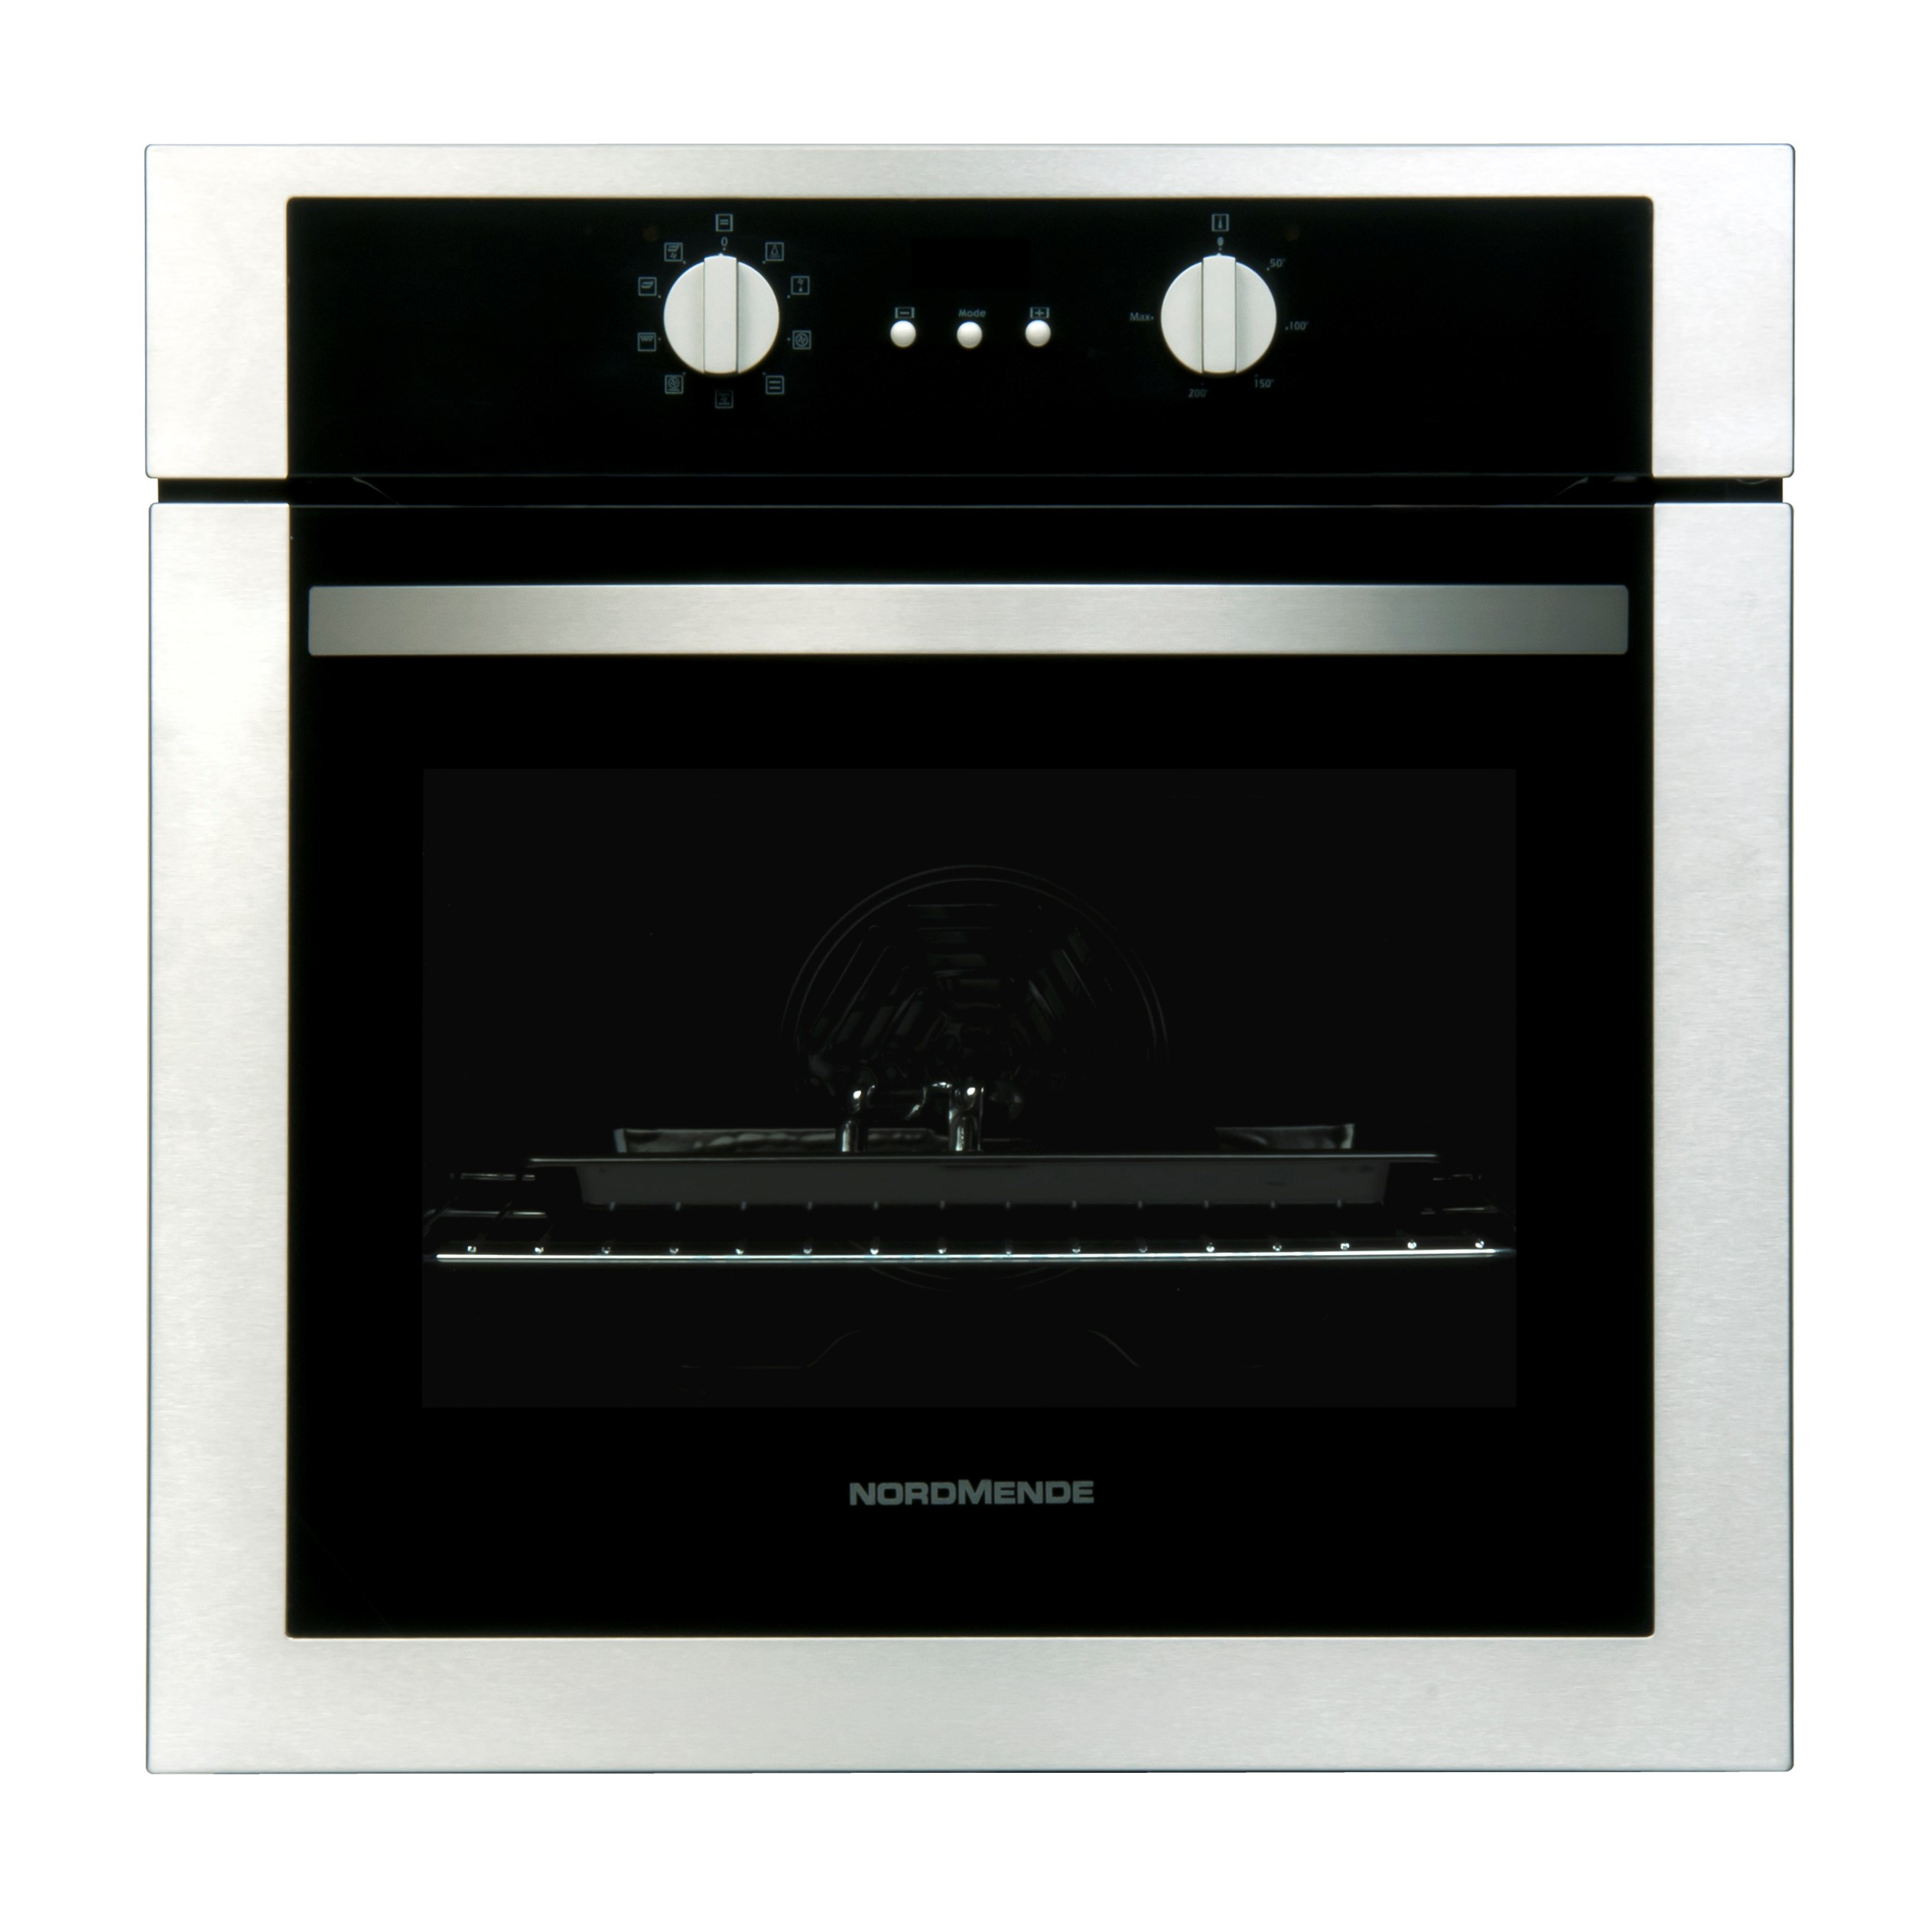 Nordmende Single Stainless Steel Fan Oven Grill So302ix Ovens